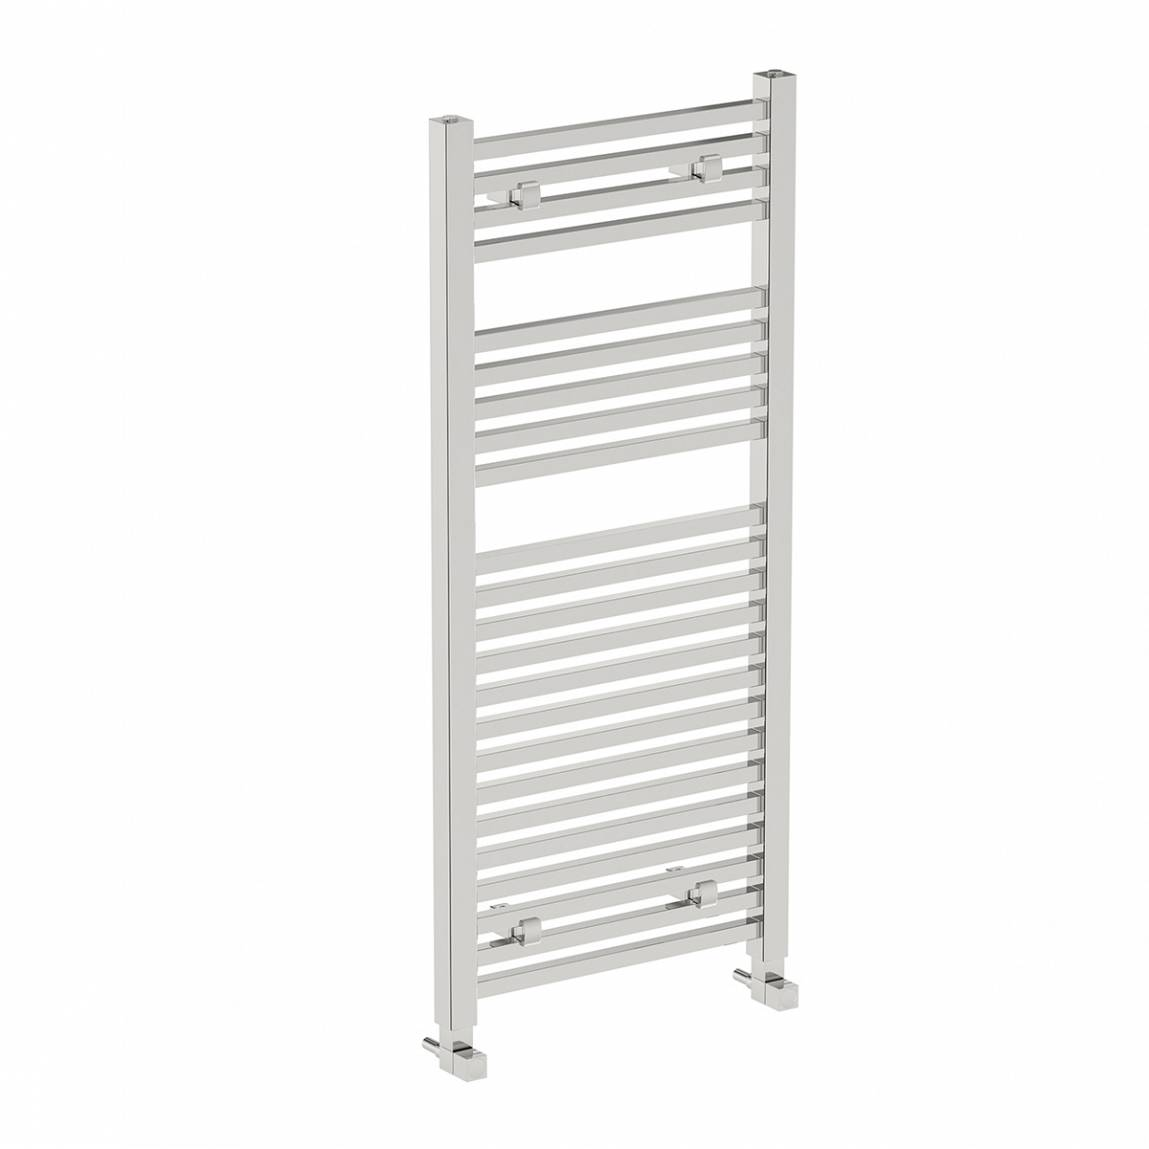 Image of Square Heated Towel Rail 1200 x 490